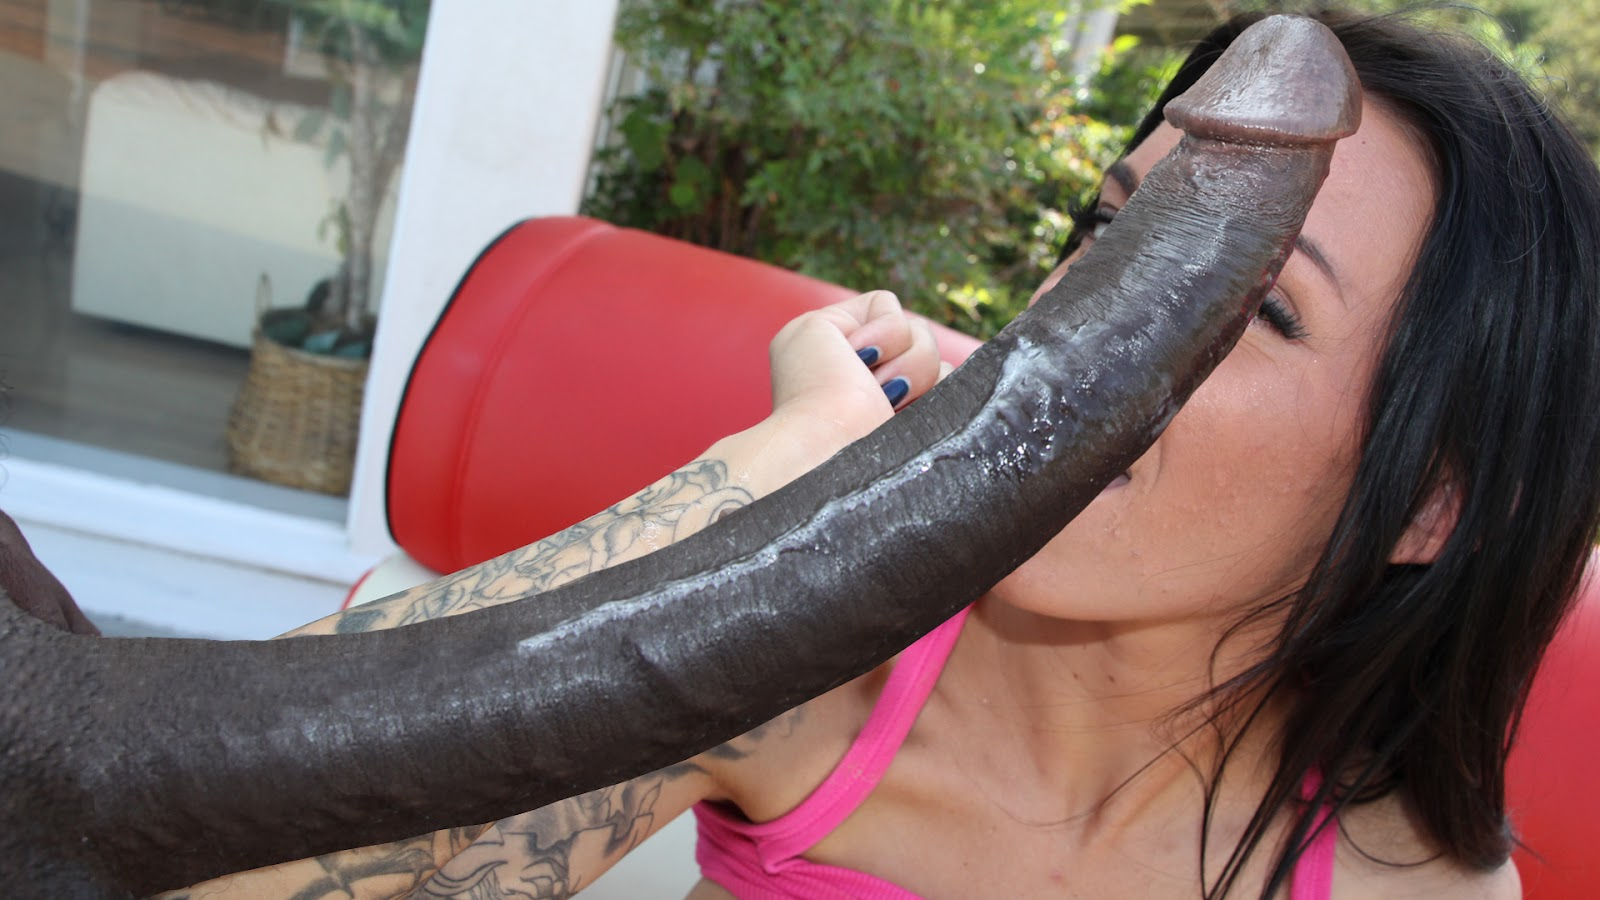 Monster black cock pics exposed films